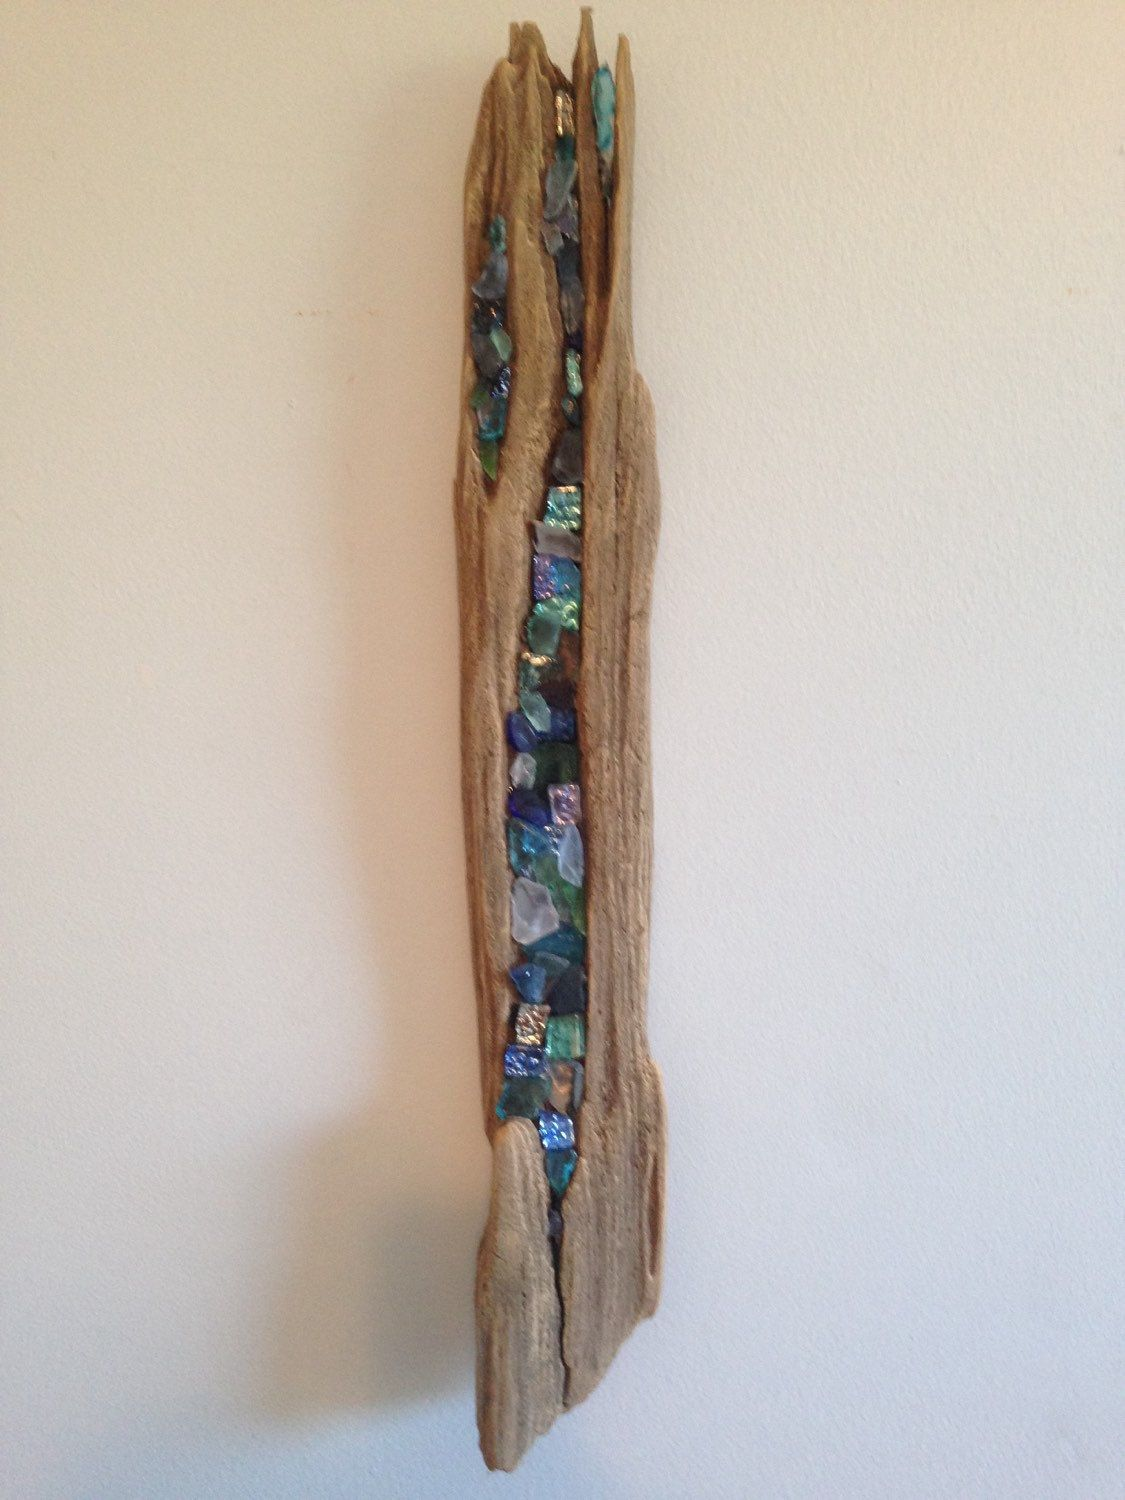 Pin By Pamela Sommers On Driftwood Driftwood Art